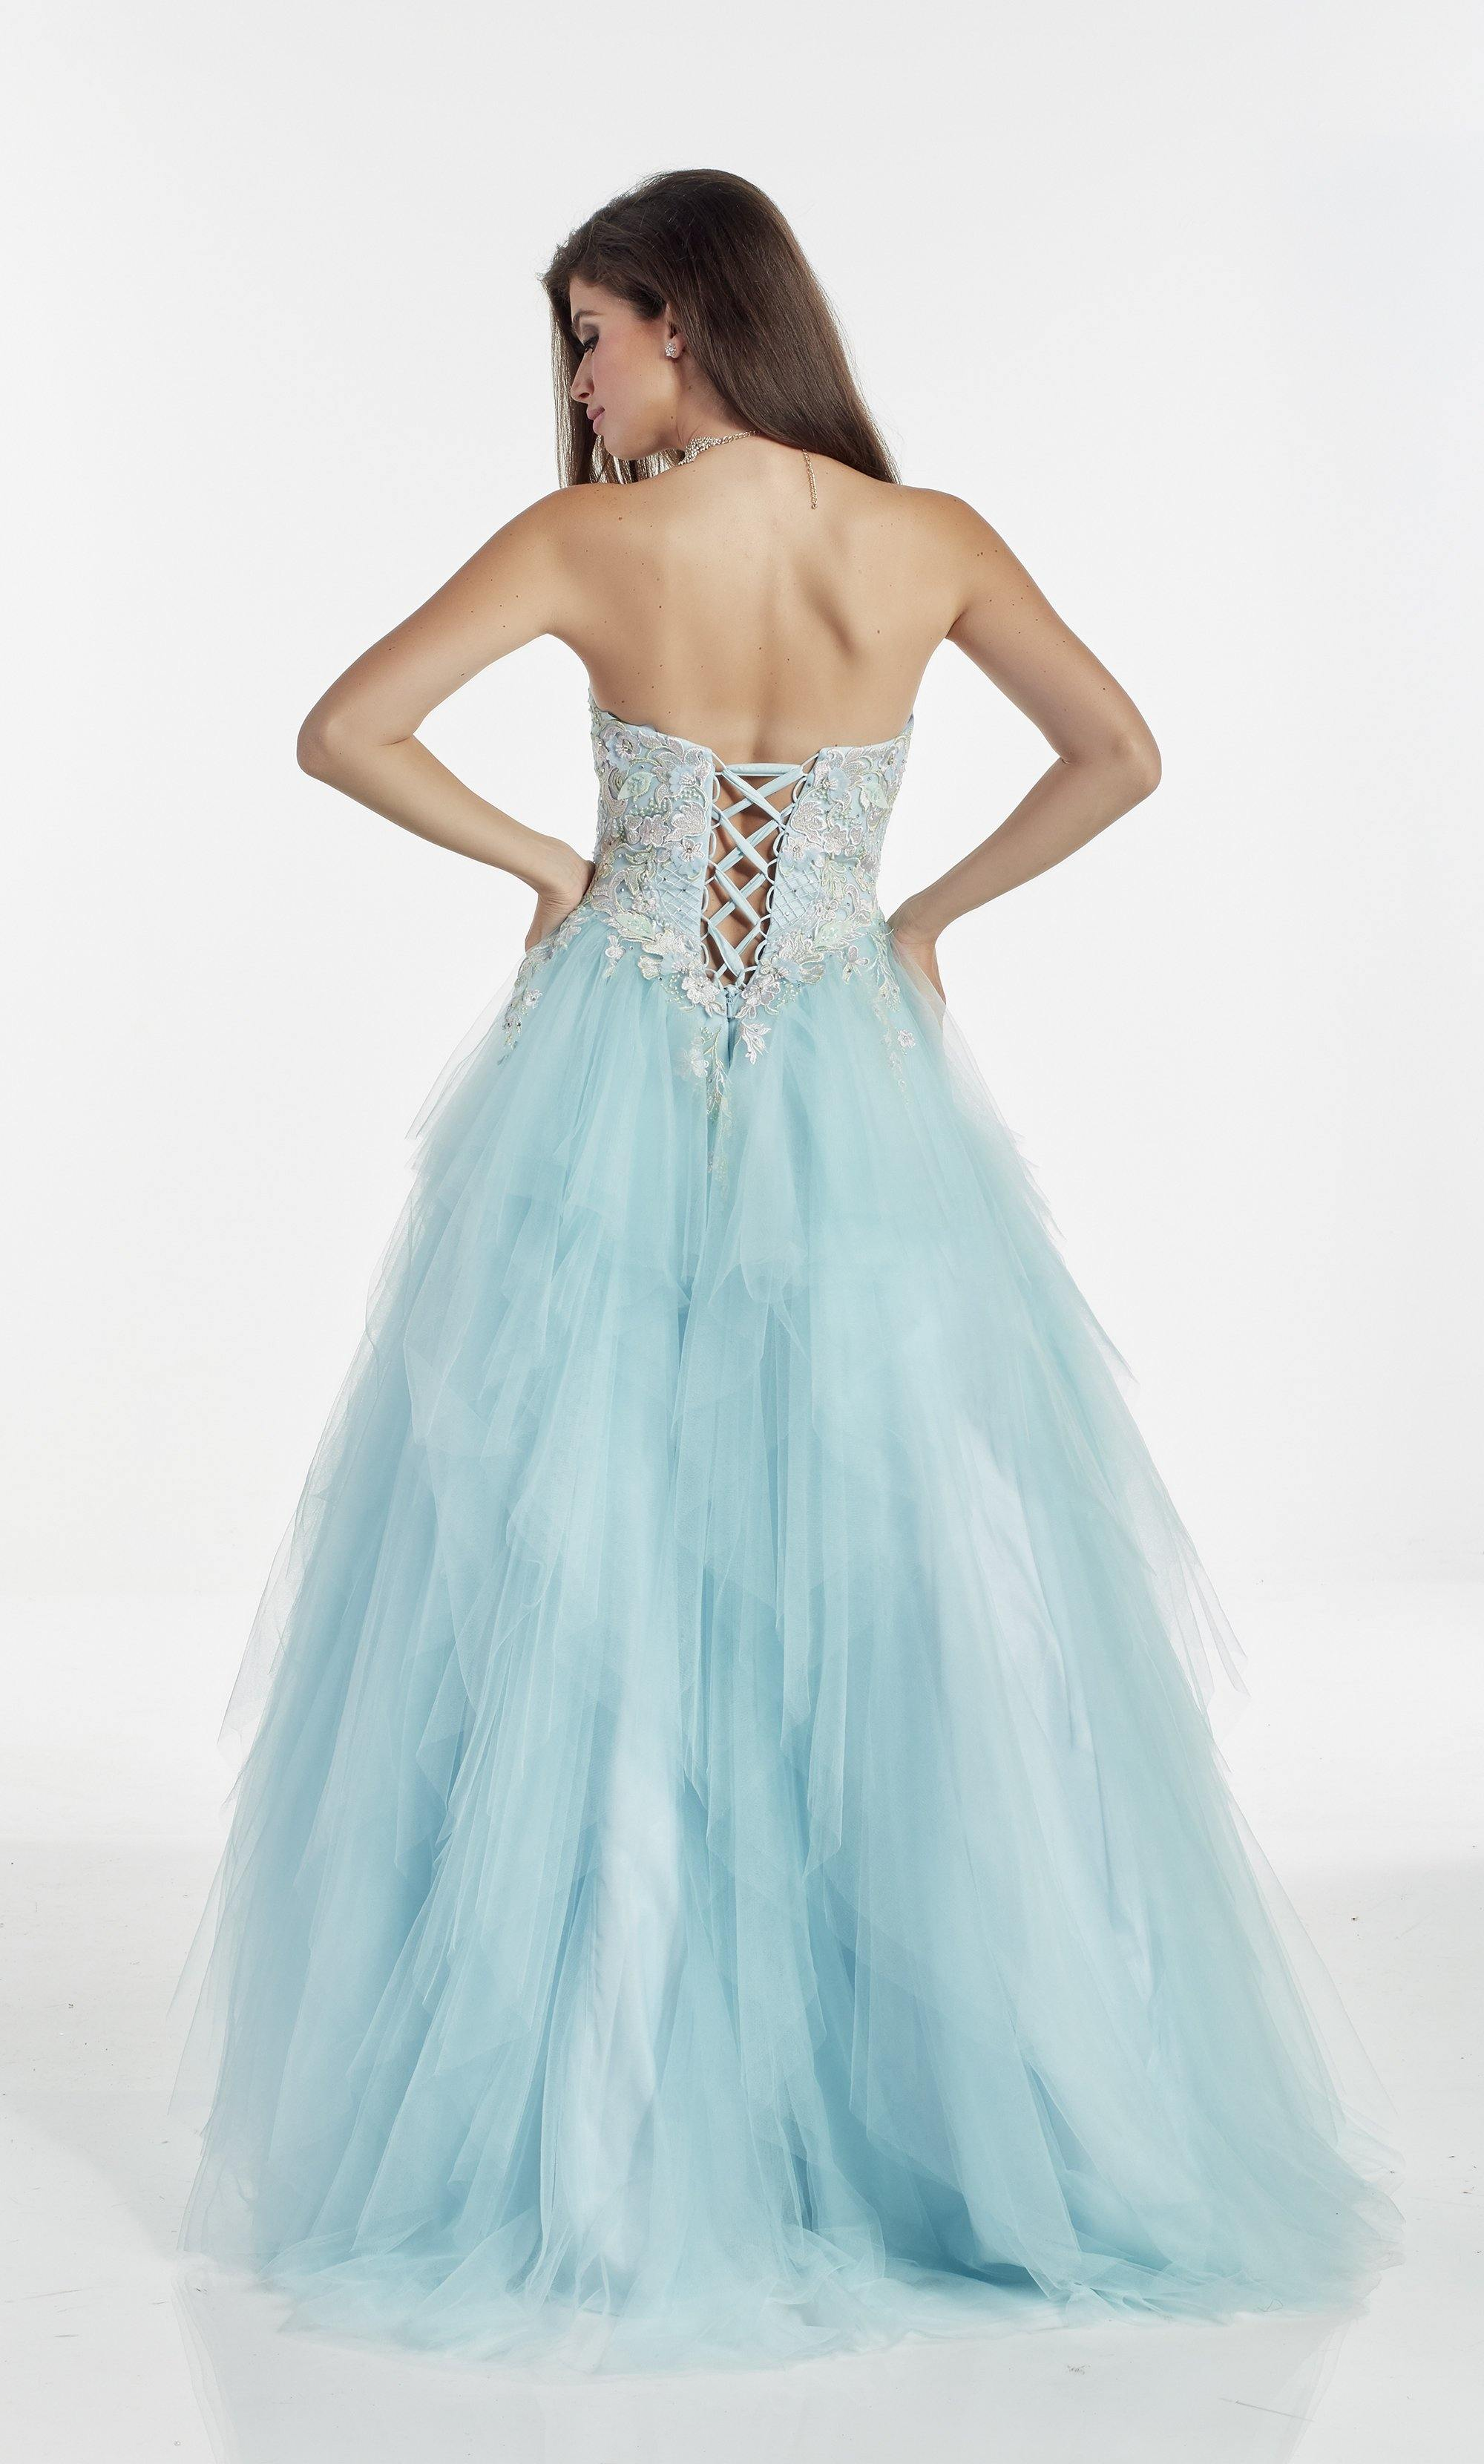 Ice Blue strapless layered tulle ballgown with embroidered-stone embellished bodice